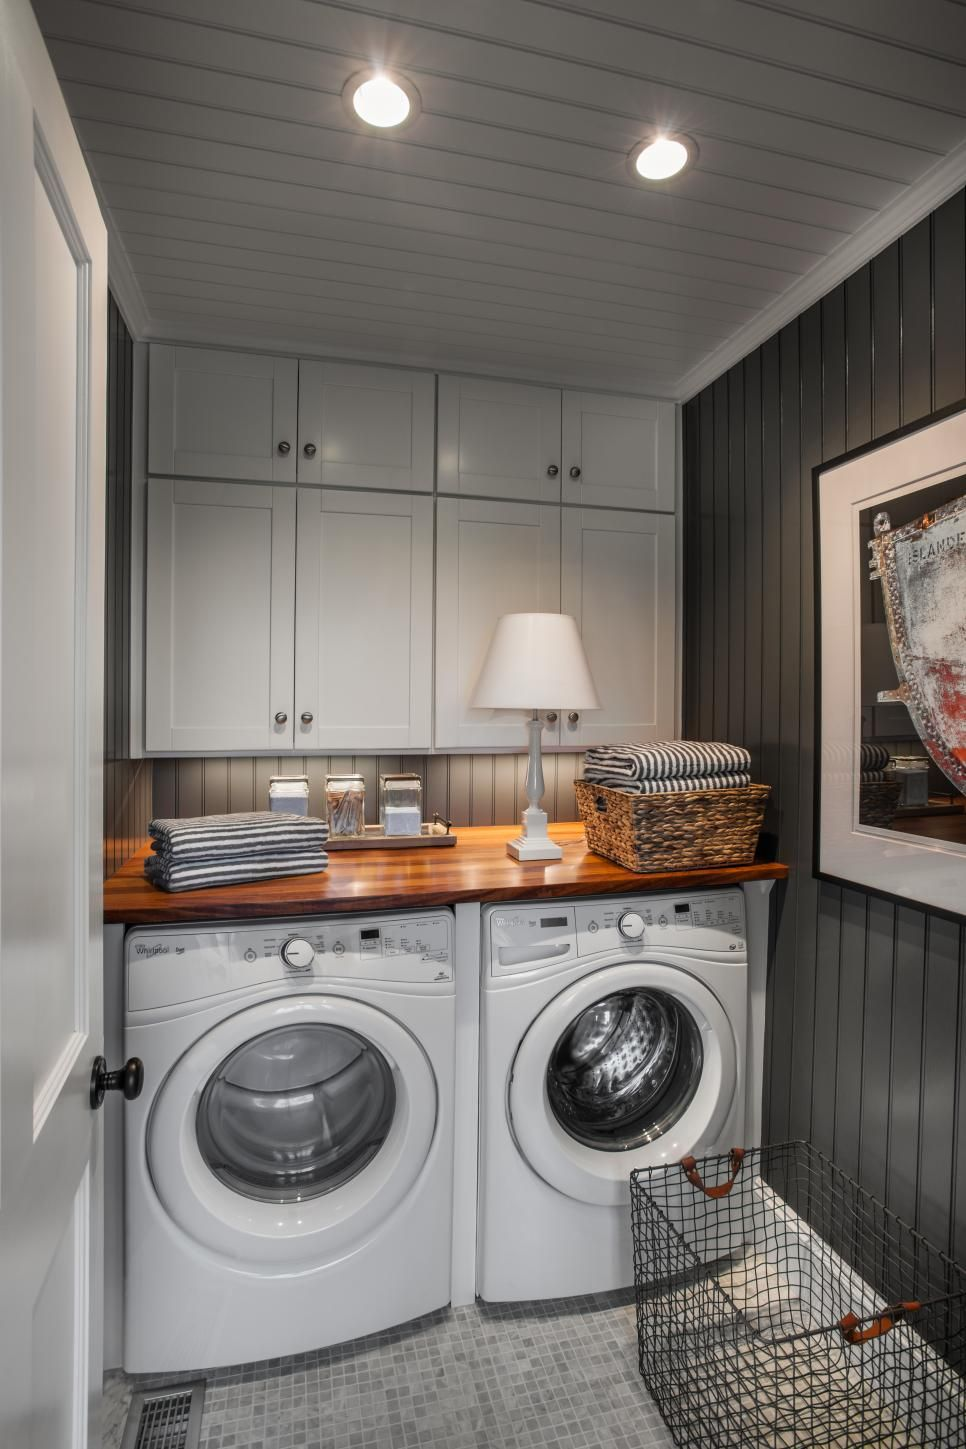 Laundry room ideas drying racks cute laundry rooms utilitarian spaces - Dream Home 2015 Laundry Room